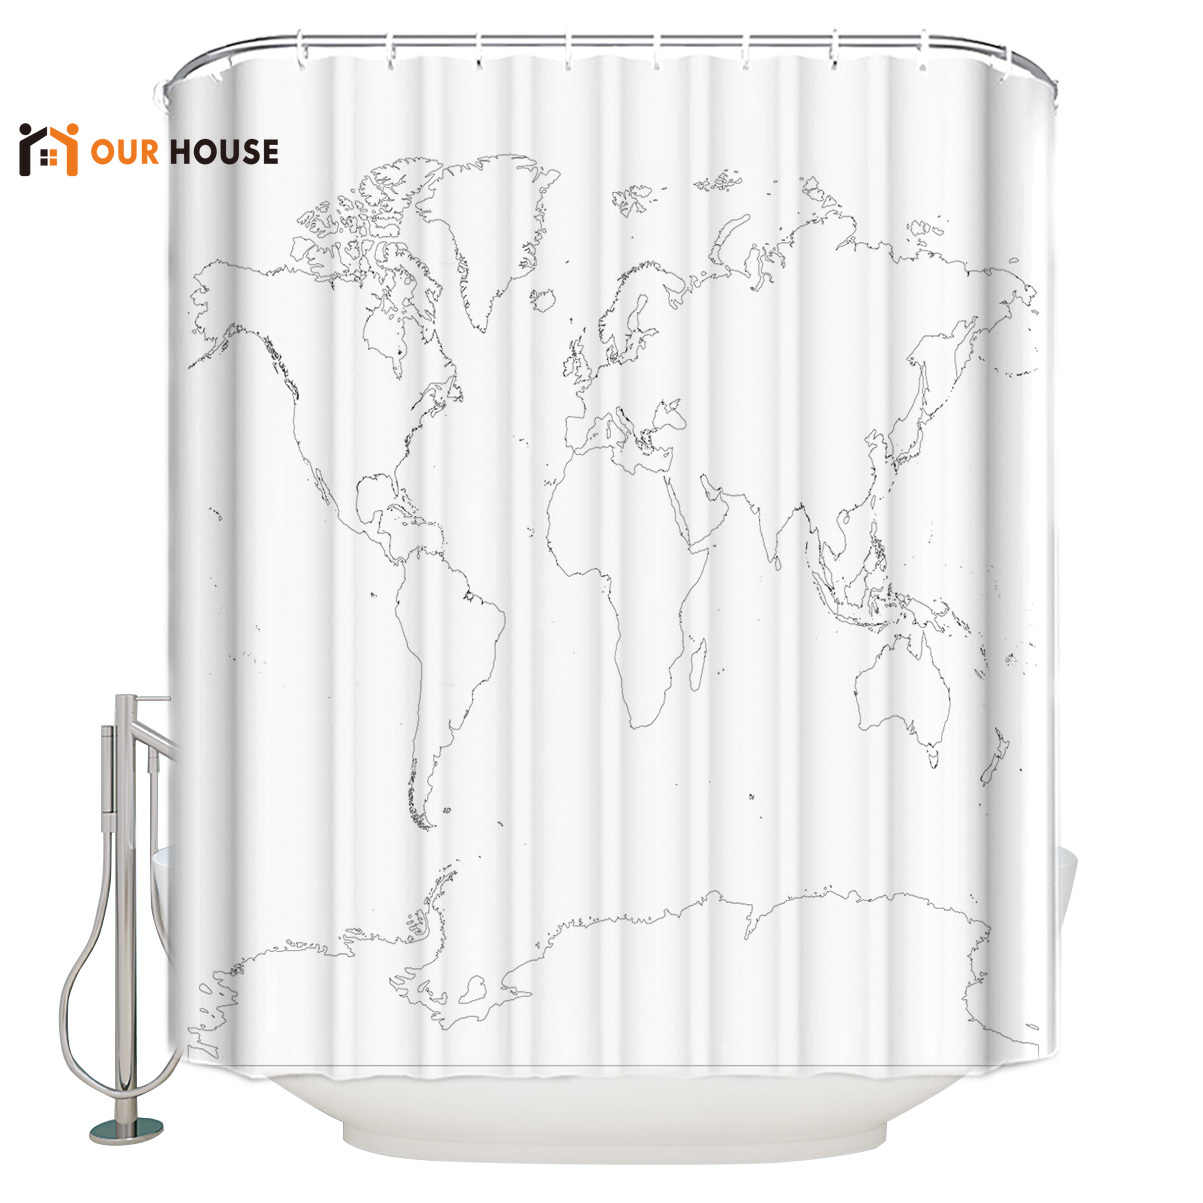 OURHouse Antarctica World Map Shower Curtain Fabric Bathroom  Sets Childrens Modern Girls Cloth Rings Bath Kids Stall Contempo